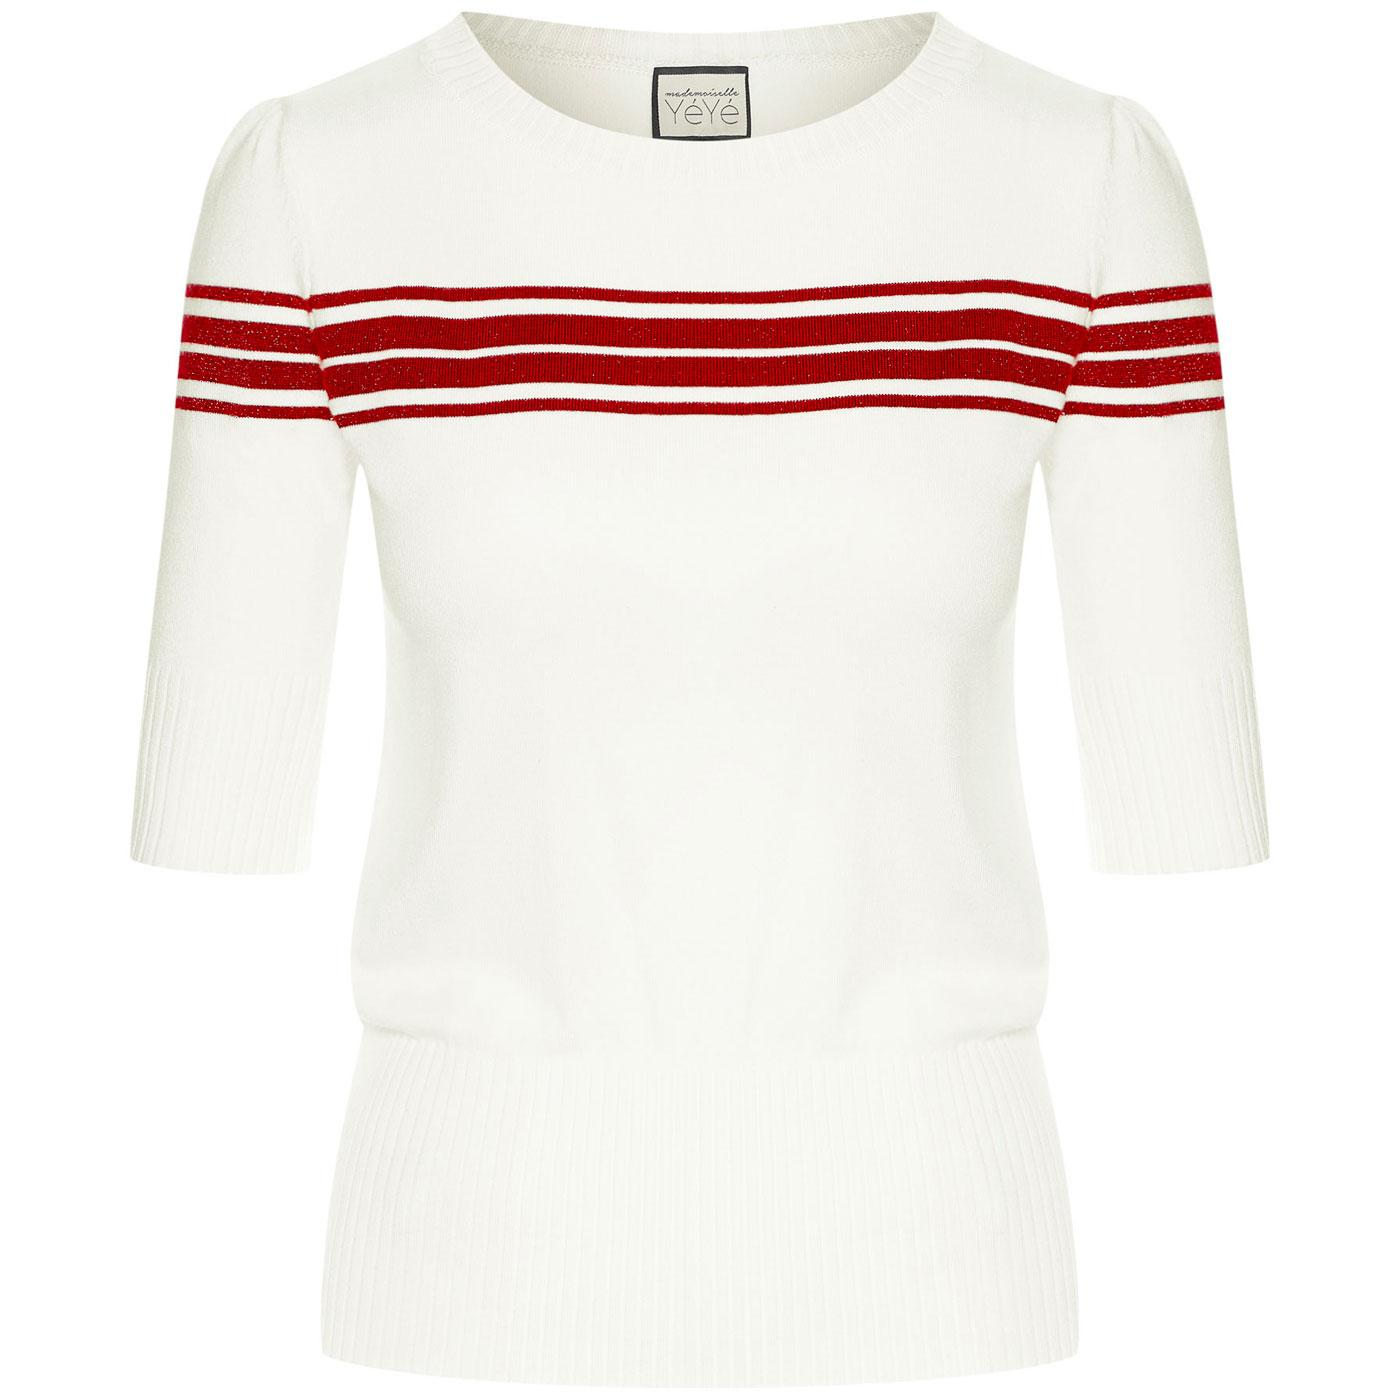 I Got Stripes MADEMOISELLE YEYE Knitted Top CREAM